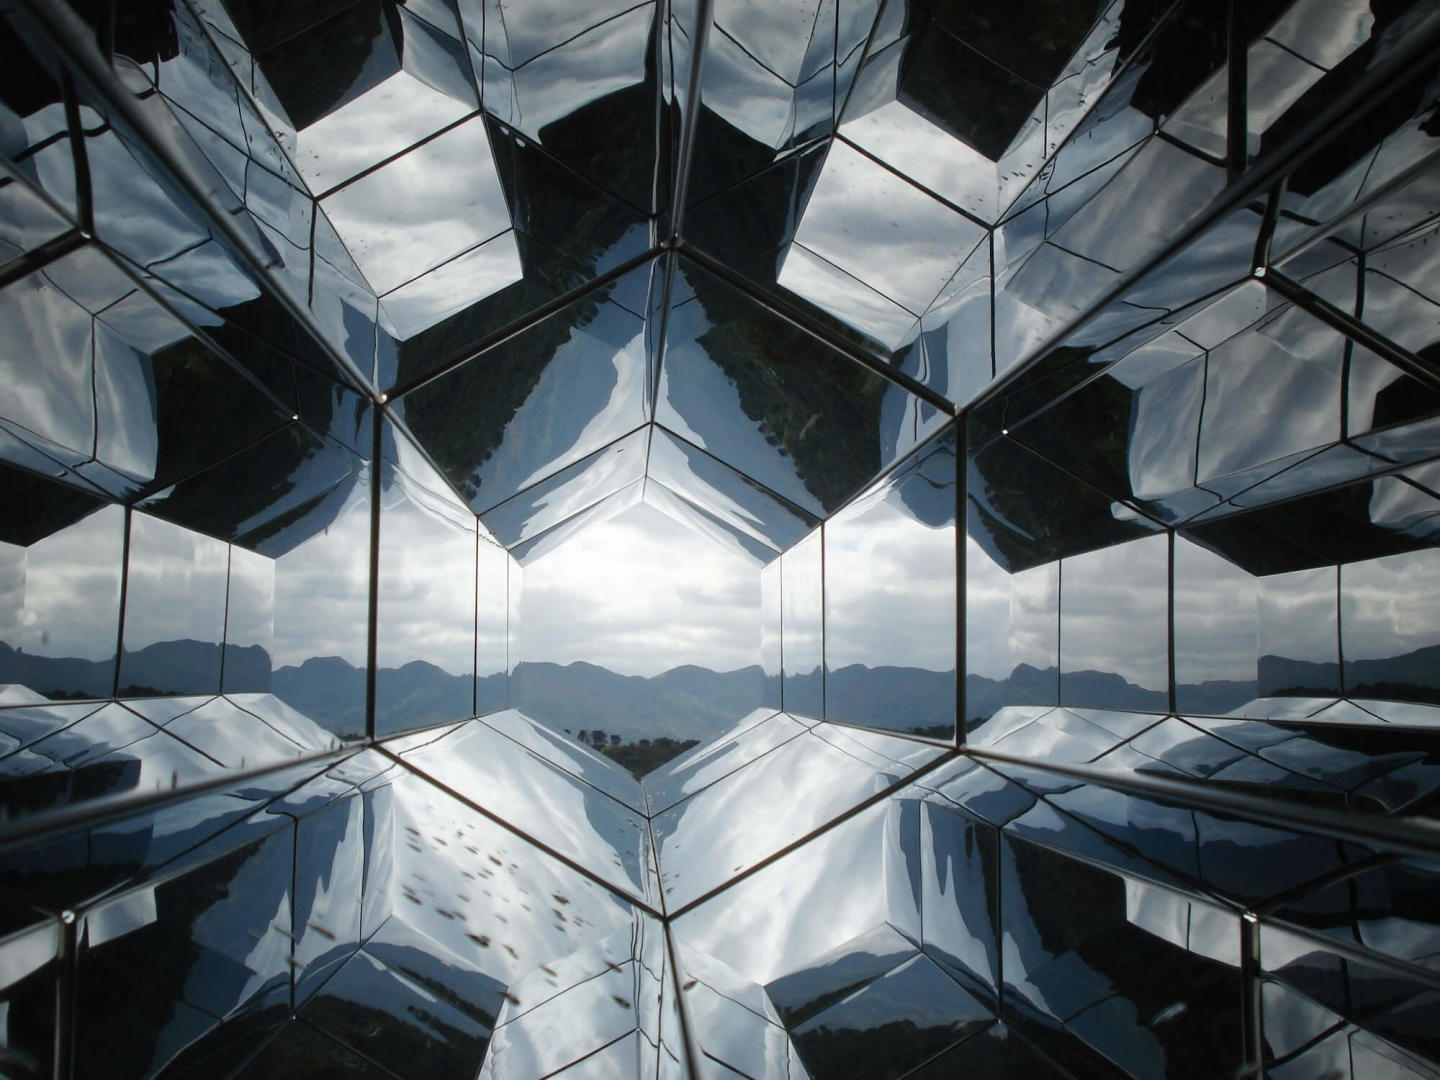 a kaleidoscope-like image looking to mountains through a metal-like structure.